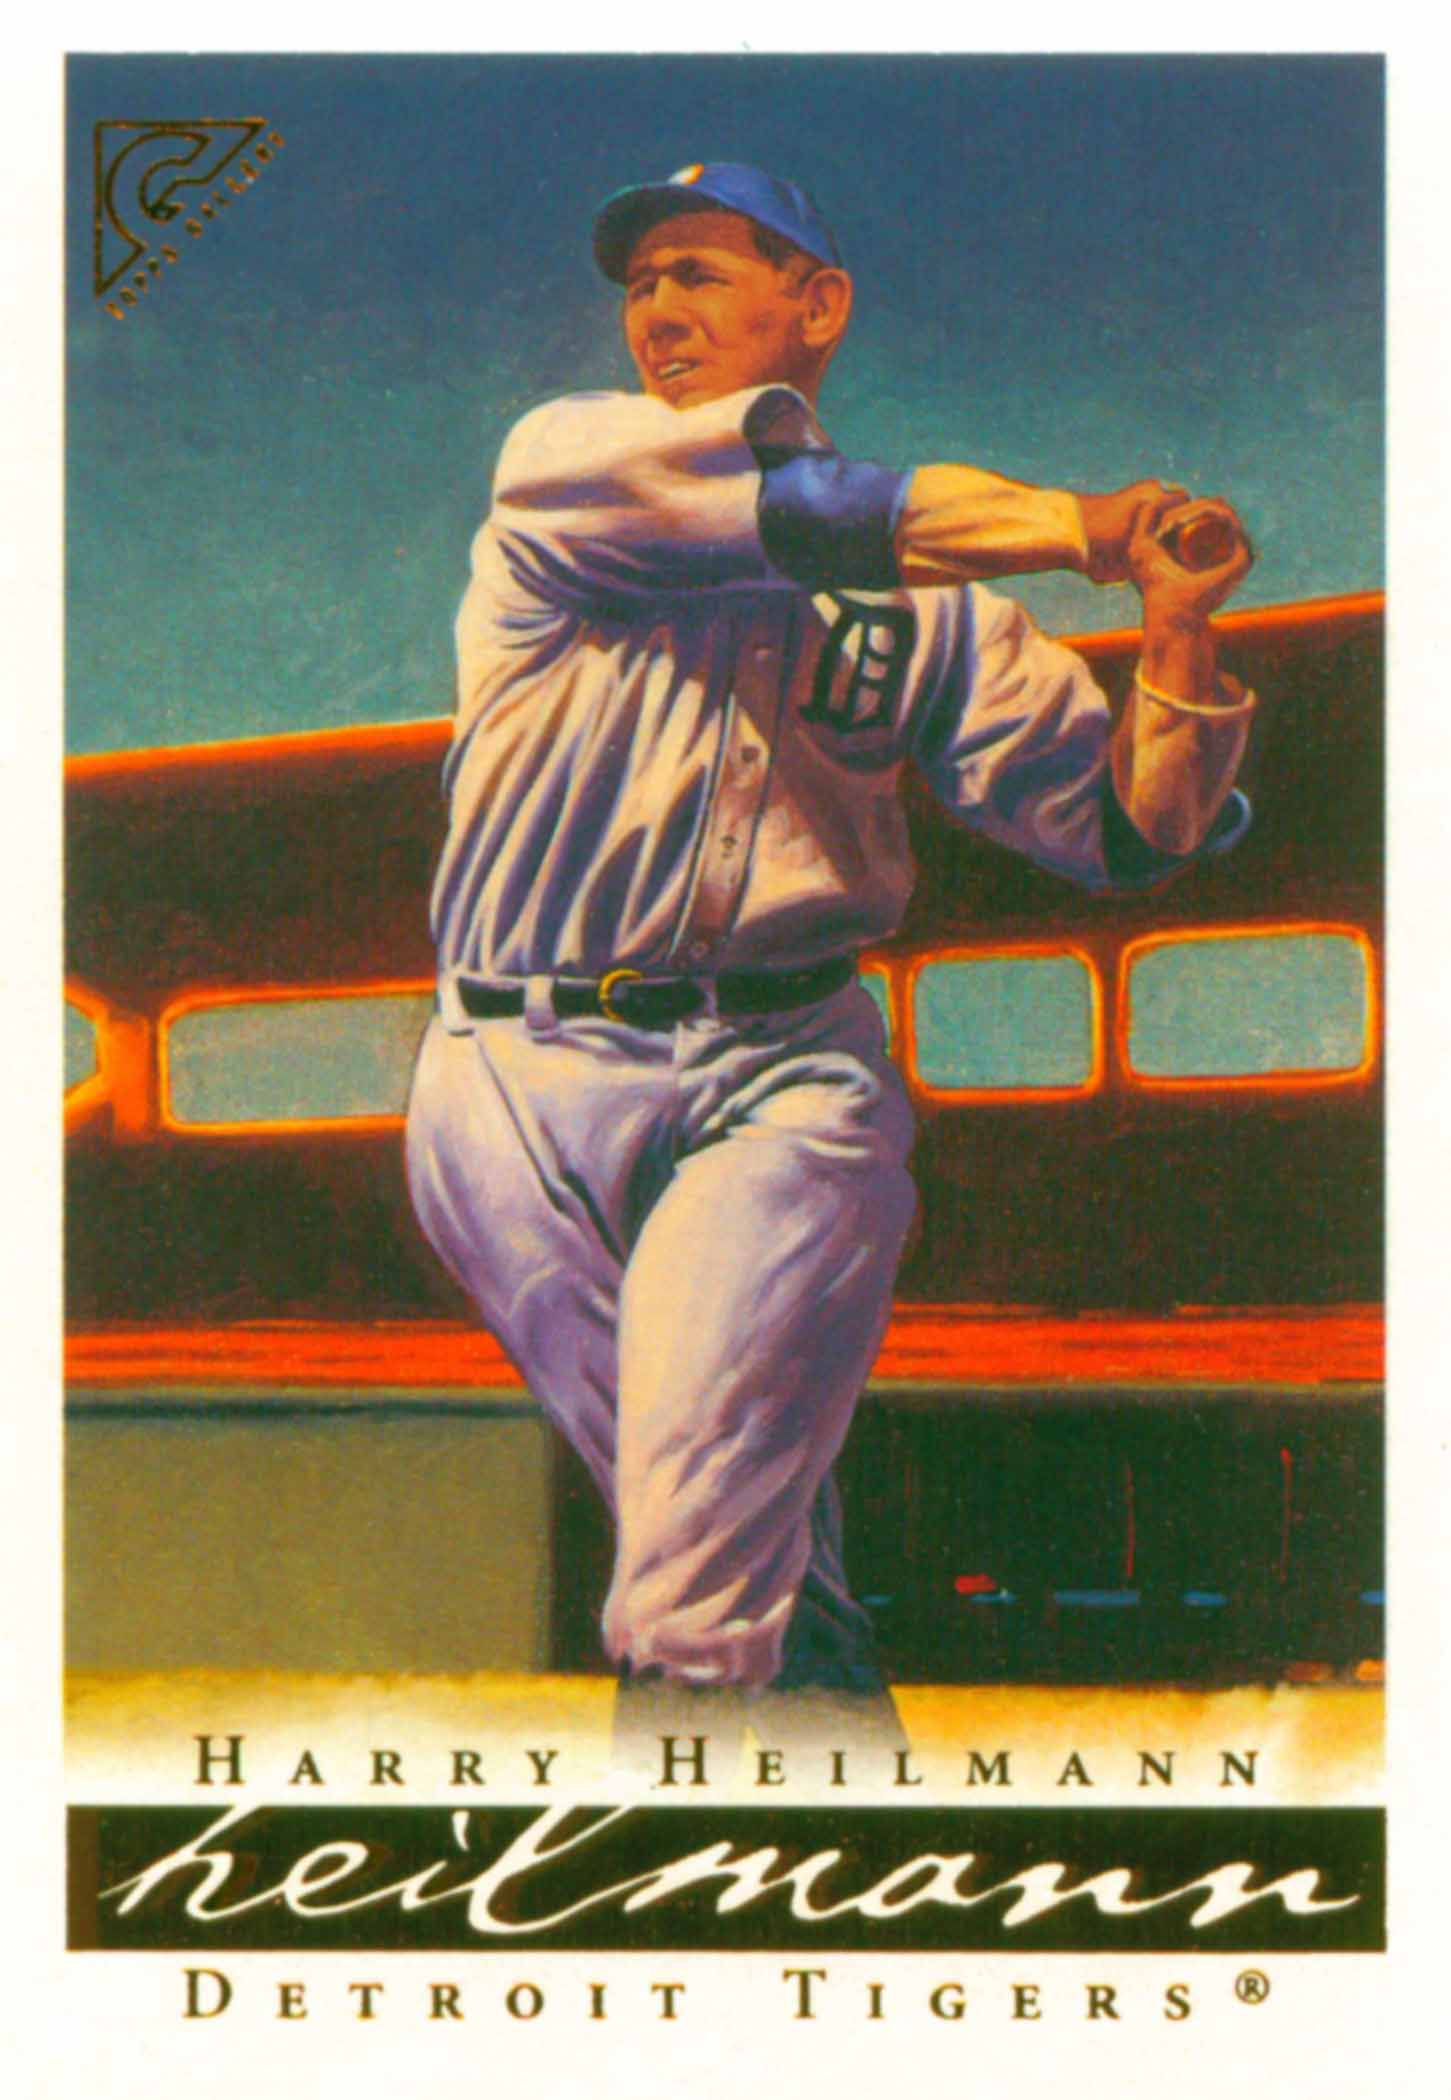 2003 Topps Gallery Hall of Fame